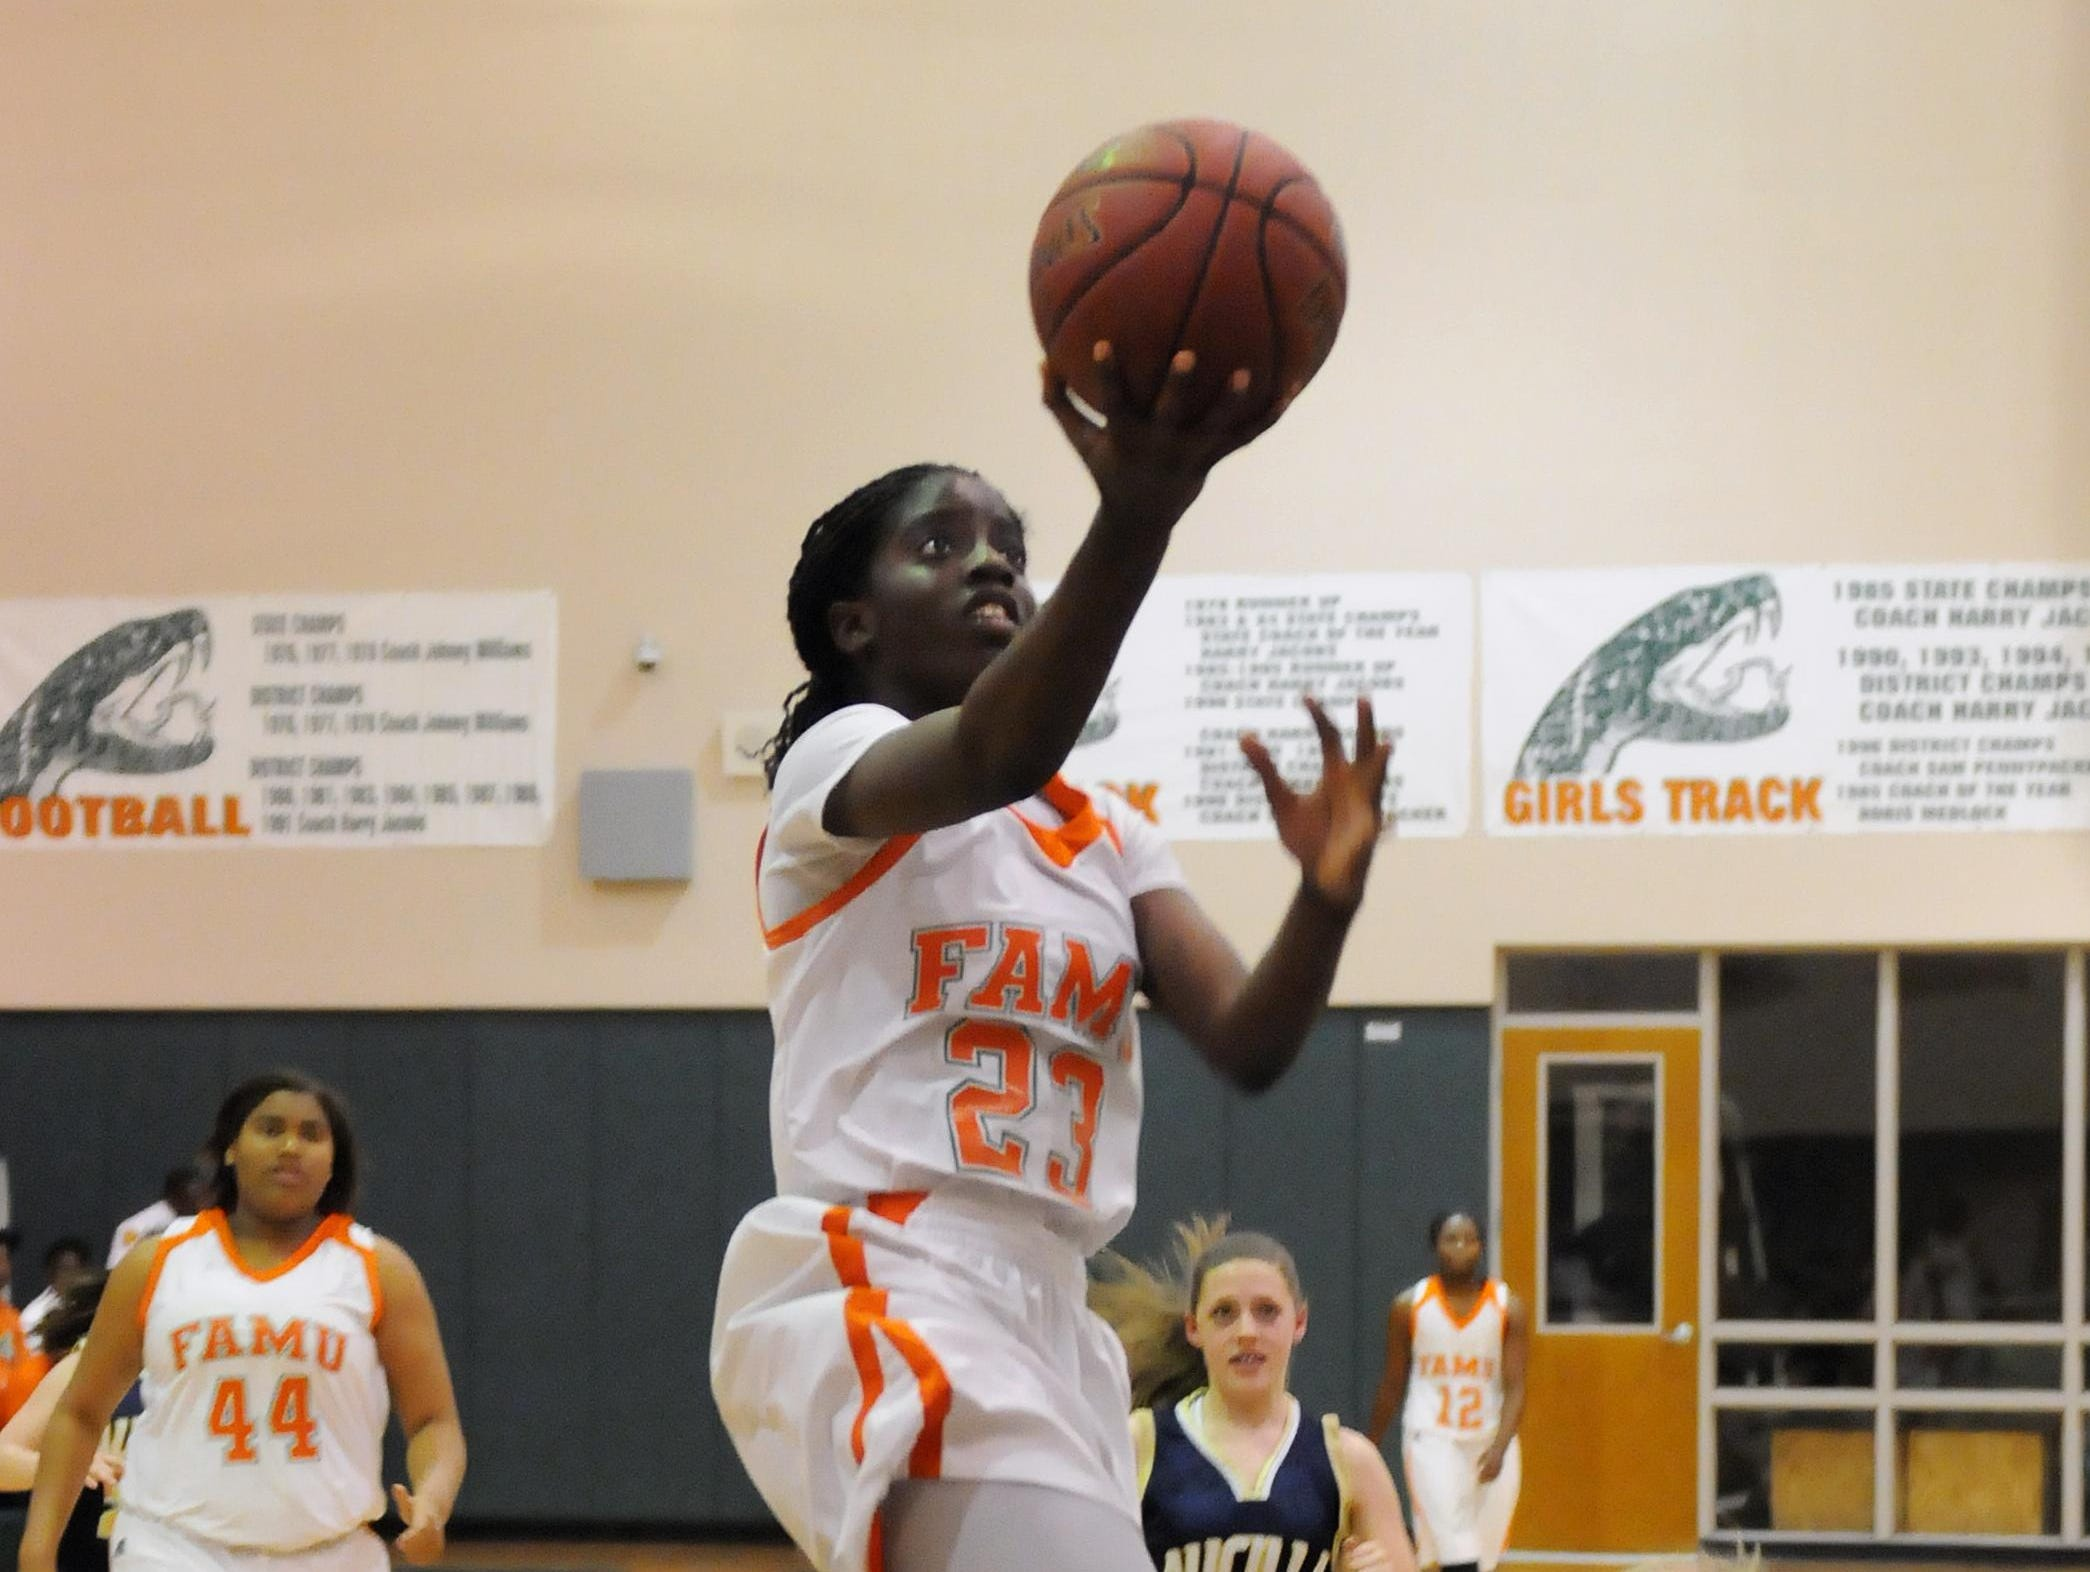 FAMU DRS senior Jazmine Jones has been starting for some time at the school, dating back to even playing her first varsity game for the Rattlers in sixth grade. Jones and the Rattlers will be out for yet another state title this season.